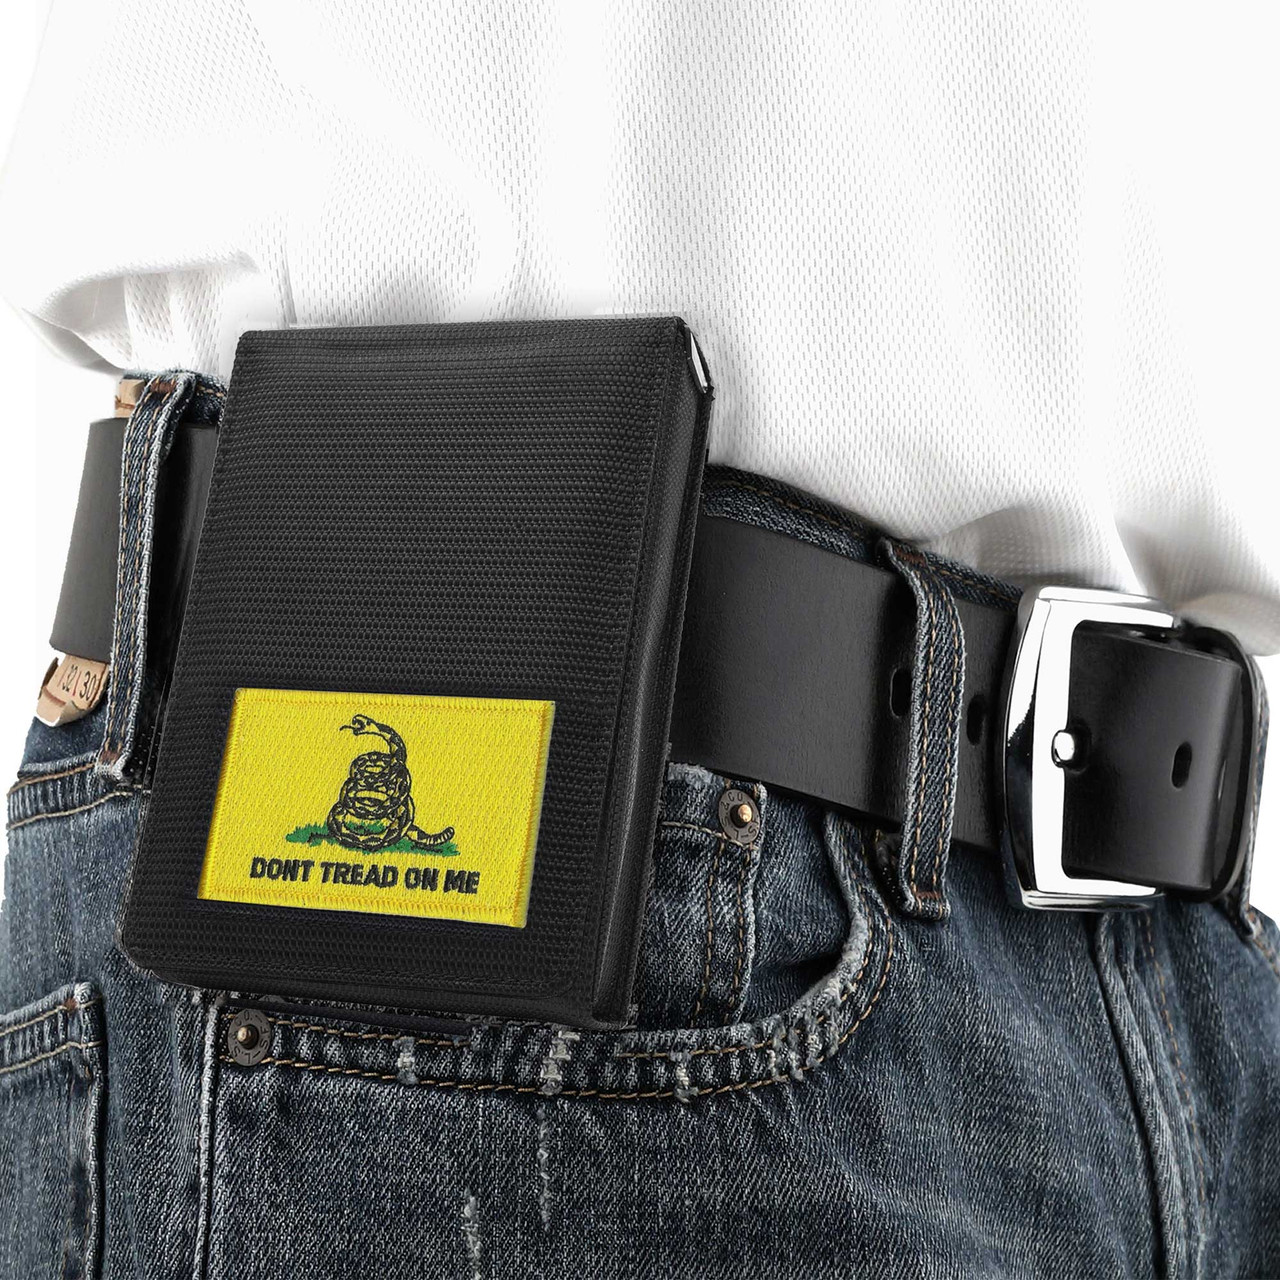 Glock 19X Don't Tread on Me Holster